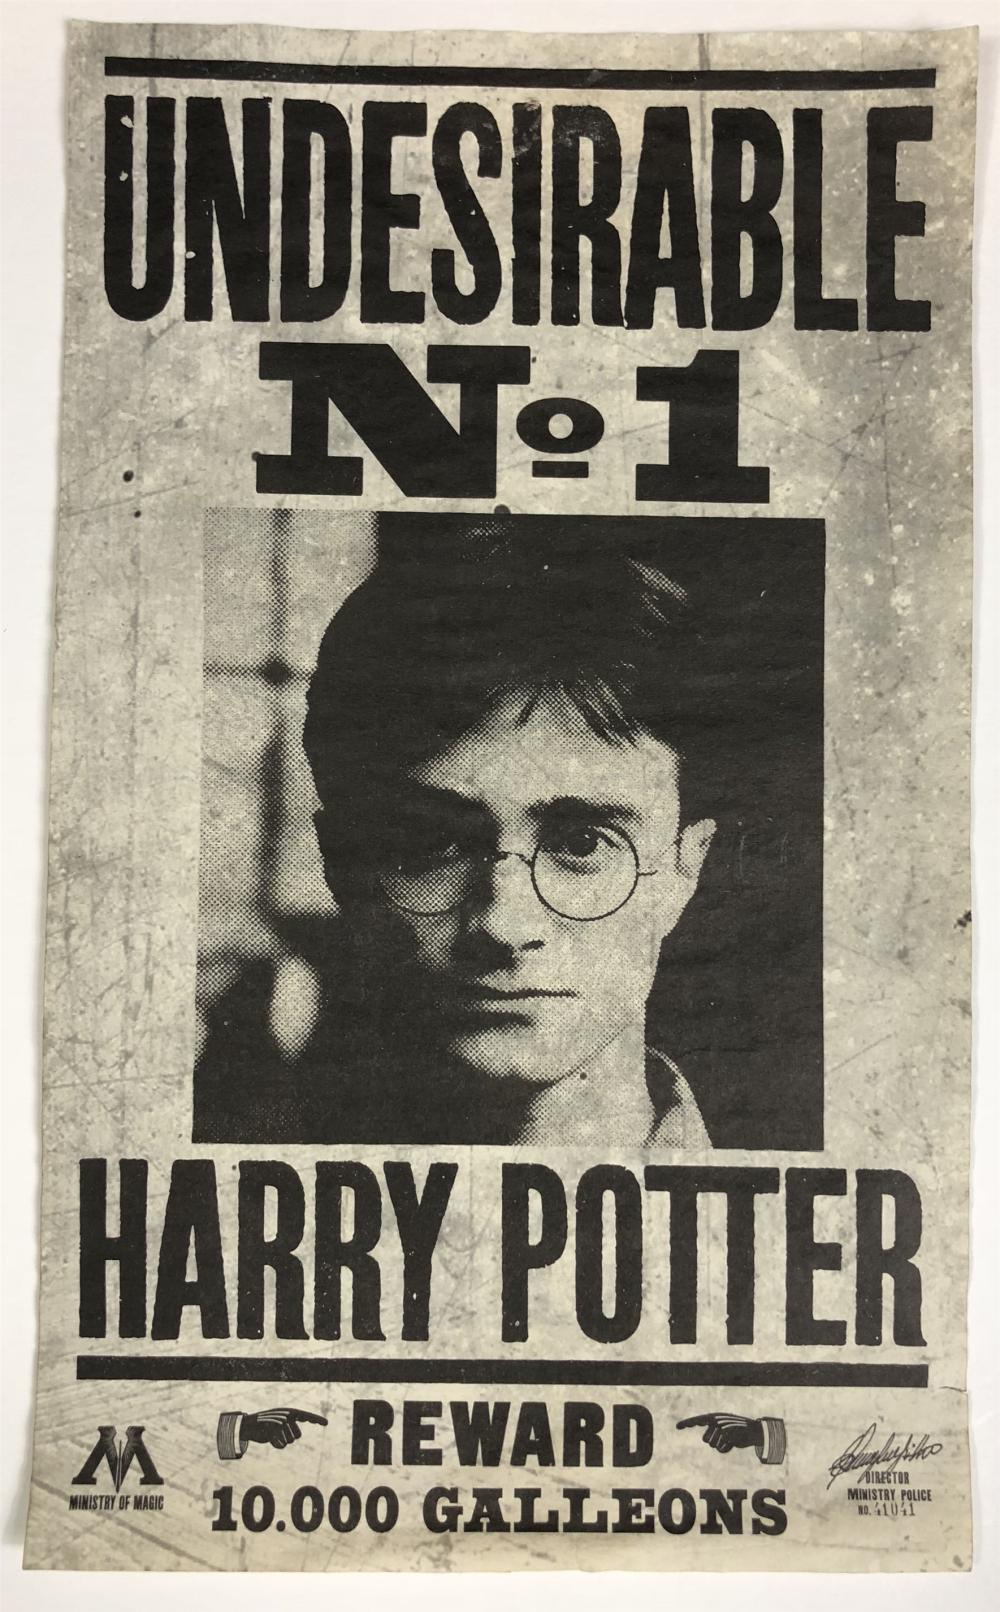 Lot 111: Harry Potter and the Deathly Hallows: Part 1 (2010) - Harry Potter Undesirable No1 Flyer